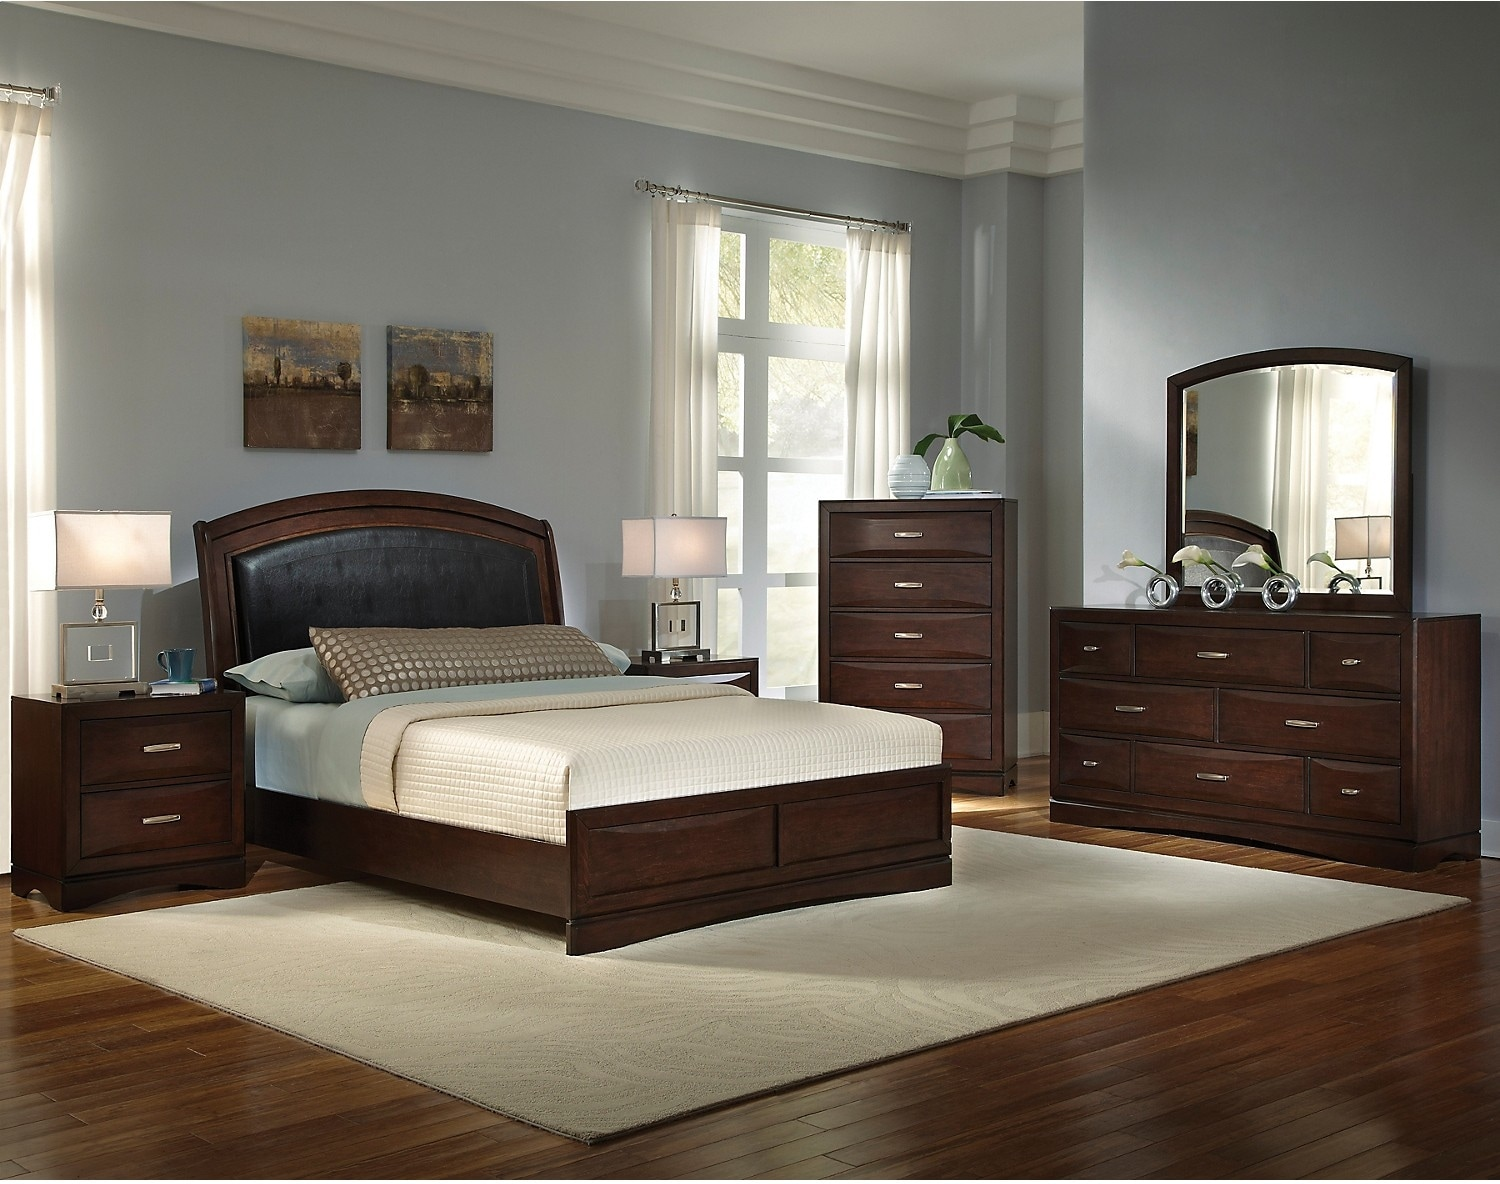 Beverly 8 piece queen bedroom set the brick for Bedroom furniture sets queen